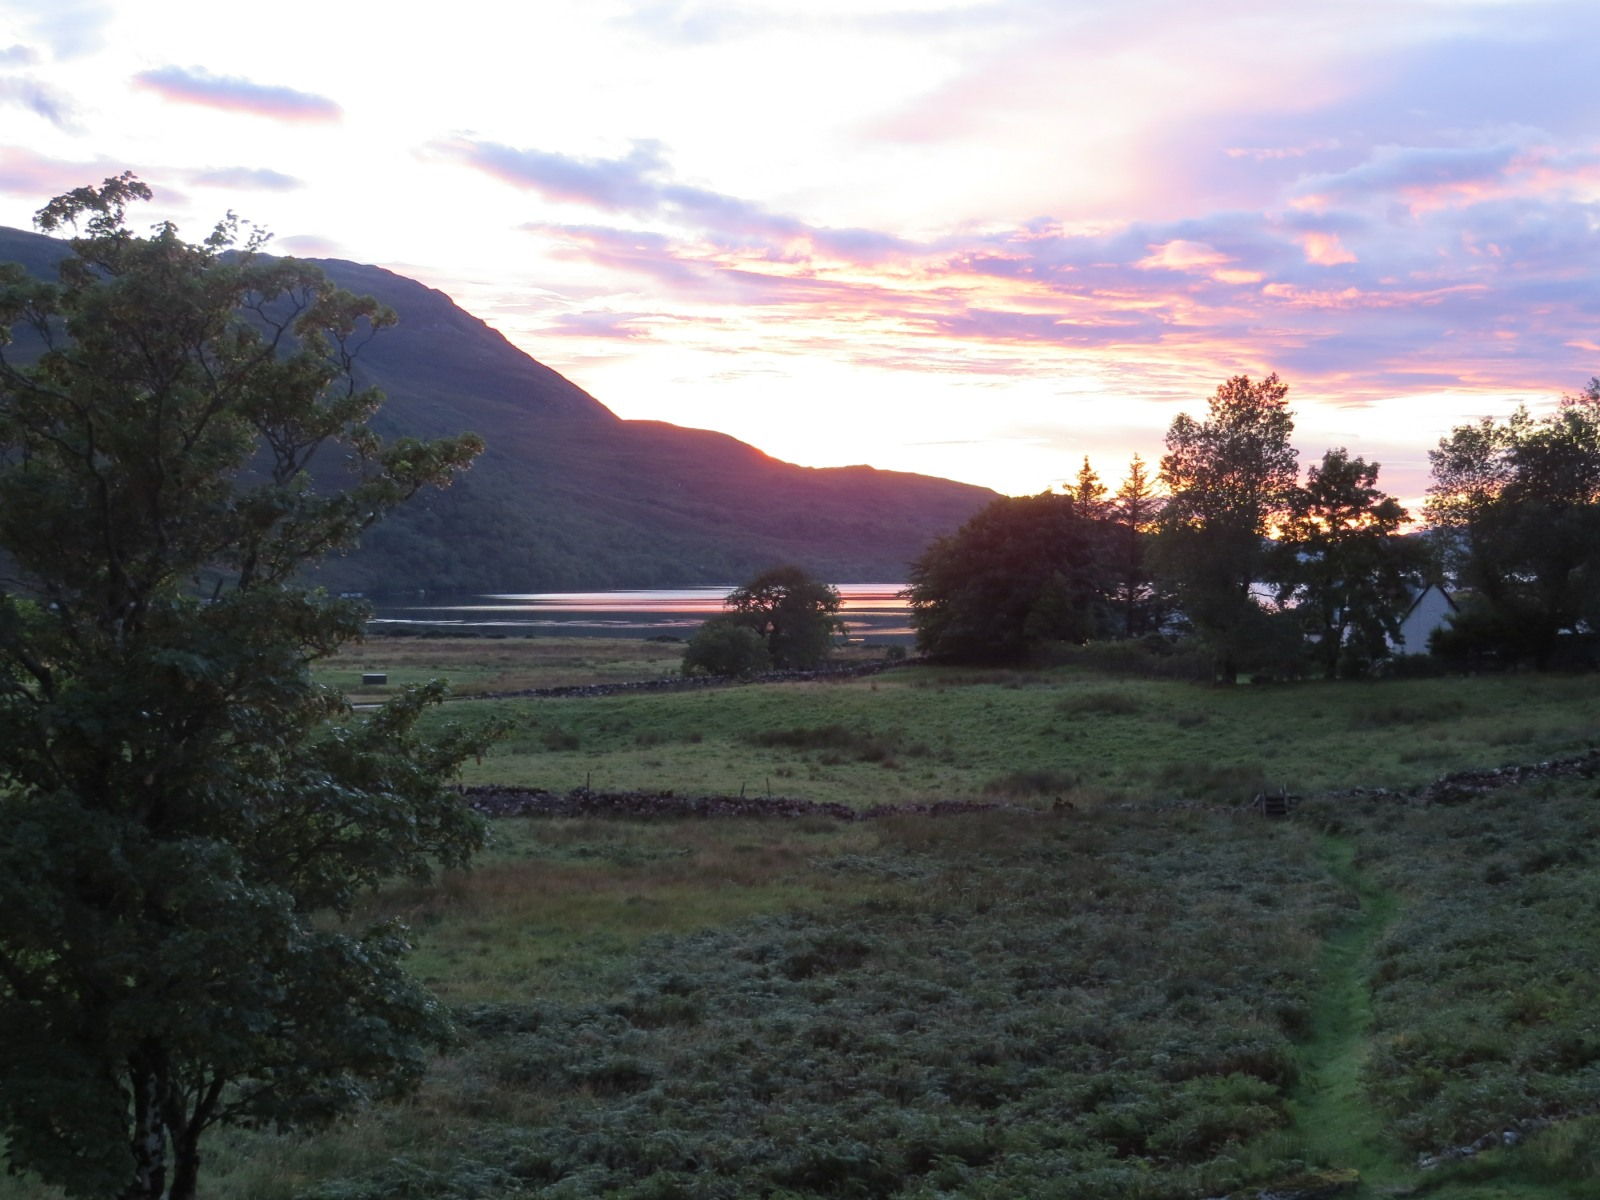 Sunset at Inchnadamph